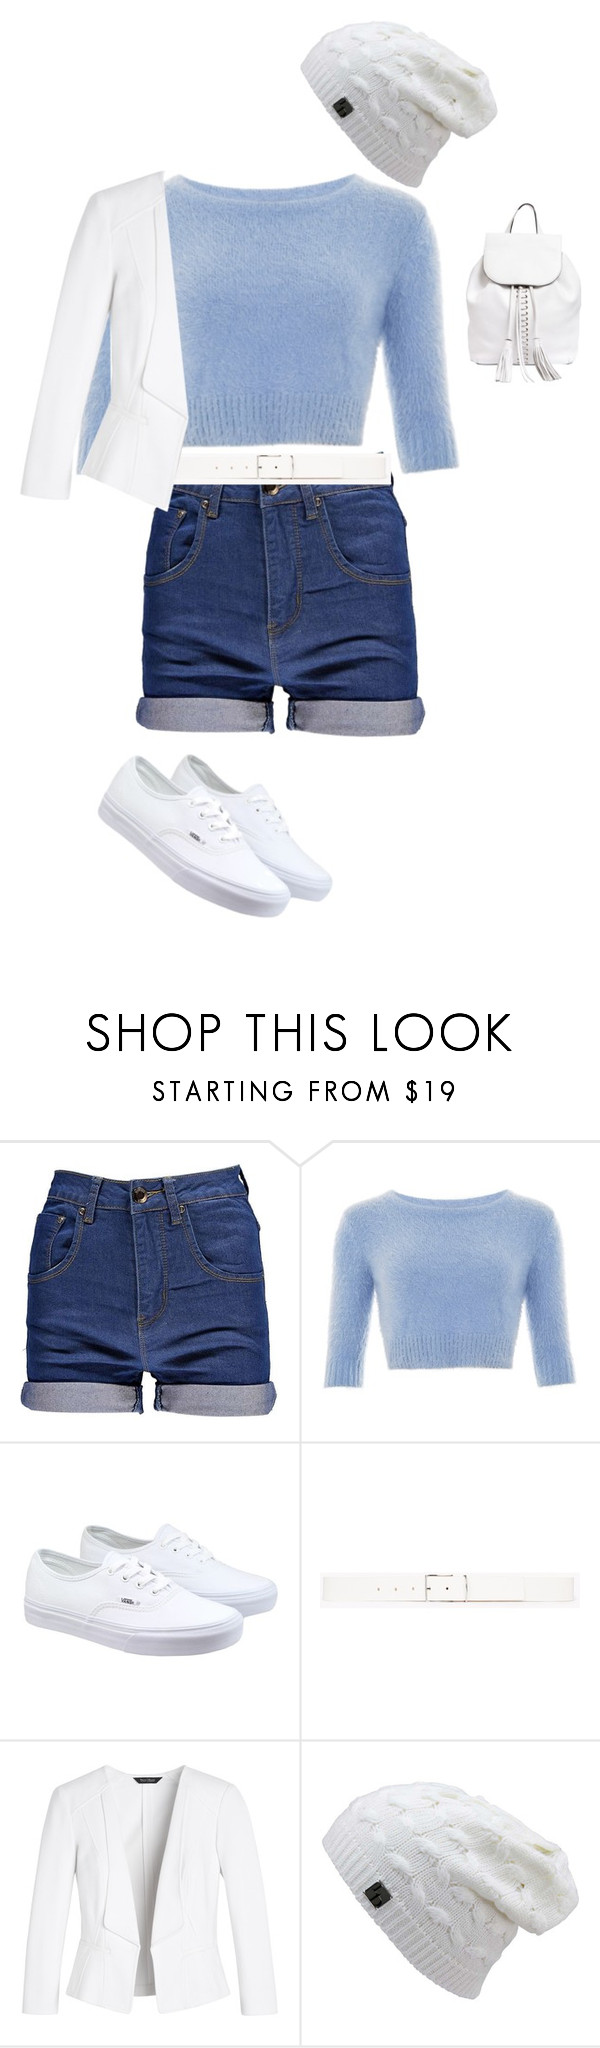 """""""Untitled #1064"""" by sylviabunny ❤ liked on Polyvore featuring Vans, Theory, White House Black Market, Rebecca Minkoff, women's clothing, women, female, woman, misses and juniors"""